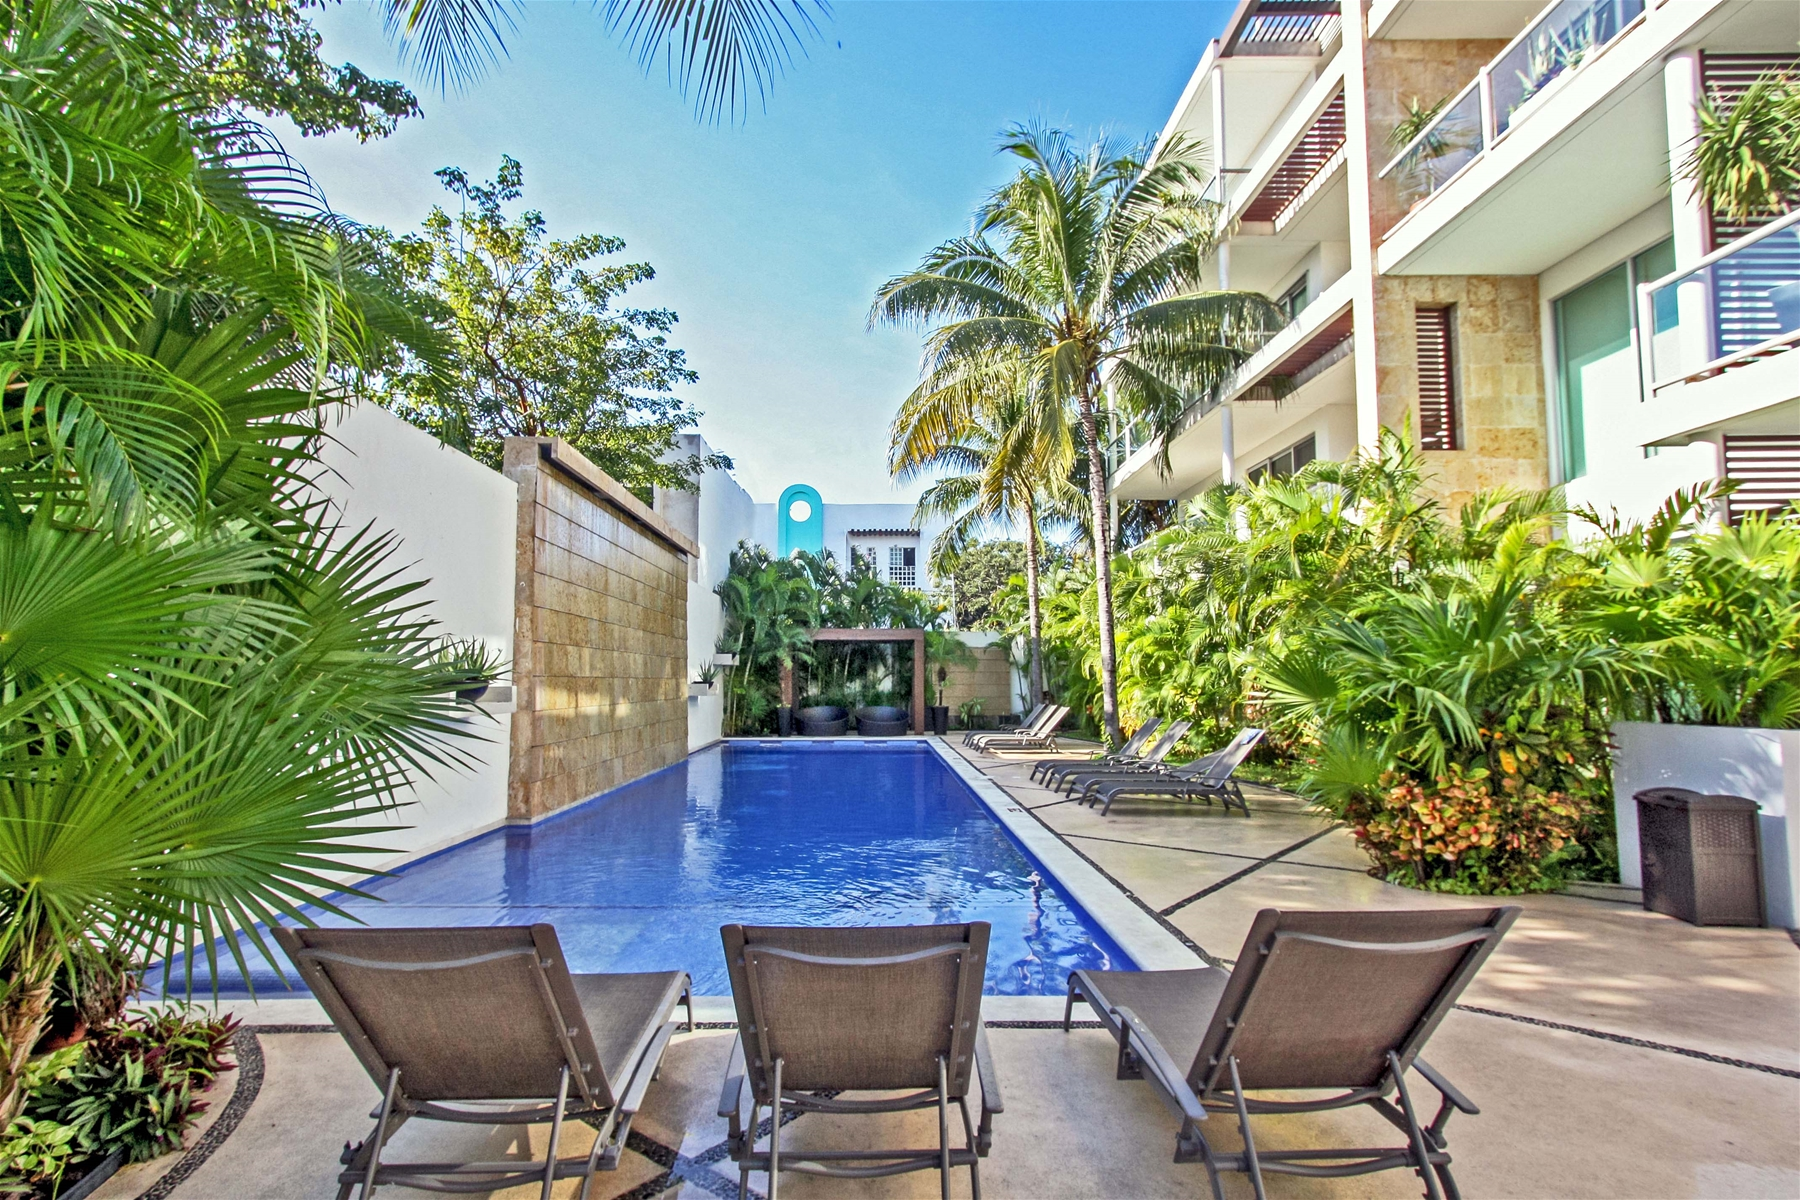 Oasis 12 Playa del Carmen Condo Home For Sale Real Estate to Buy